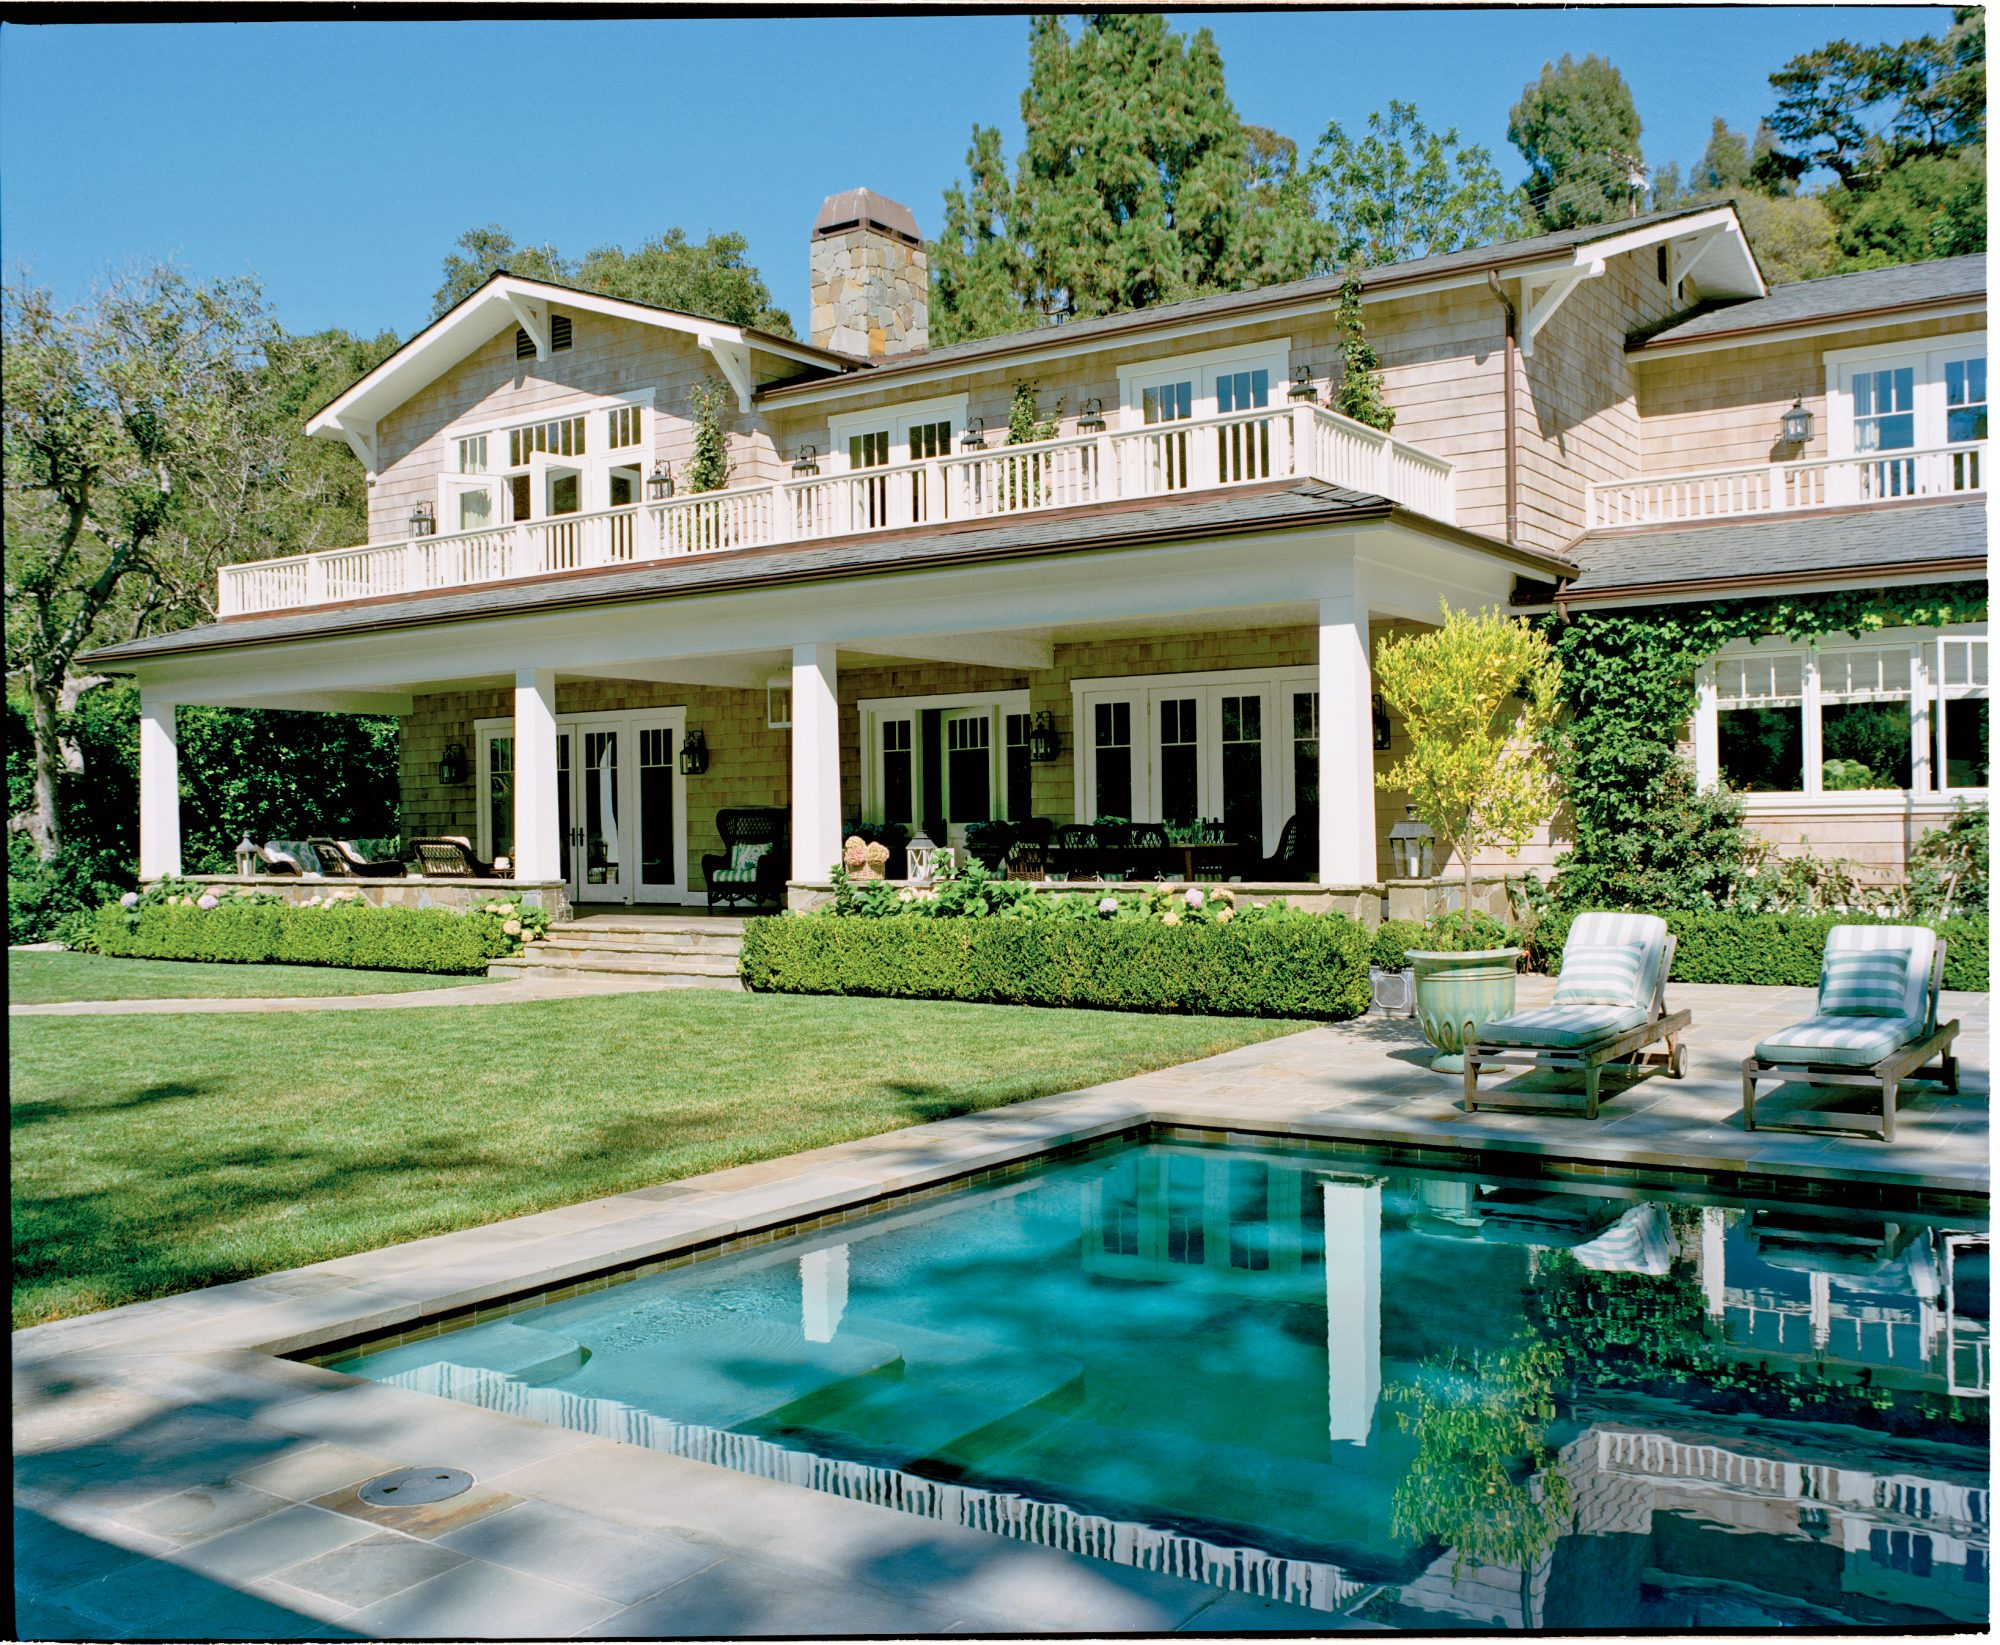 The Style: Nestled in the rolling hills of Pacific Palisades, a tony Los Angeles enclave on the ocean, this shingle-style house is the perfect marriage of East and West—coasts, that is. With a wide front porch, tons of wicker, and plenty of antiques, the